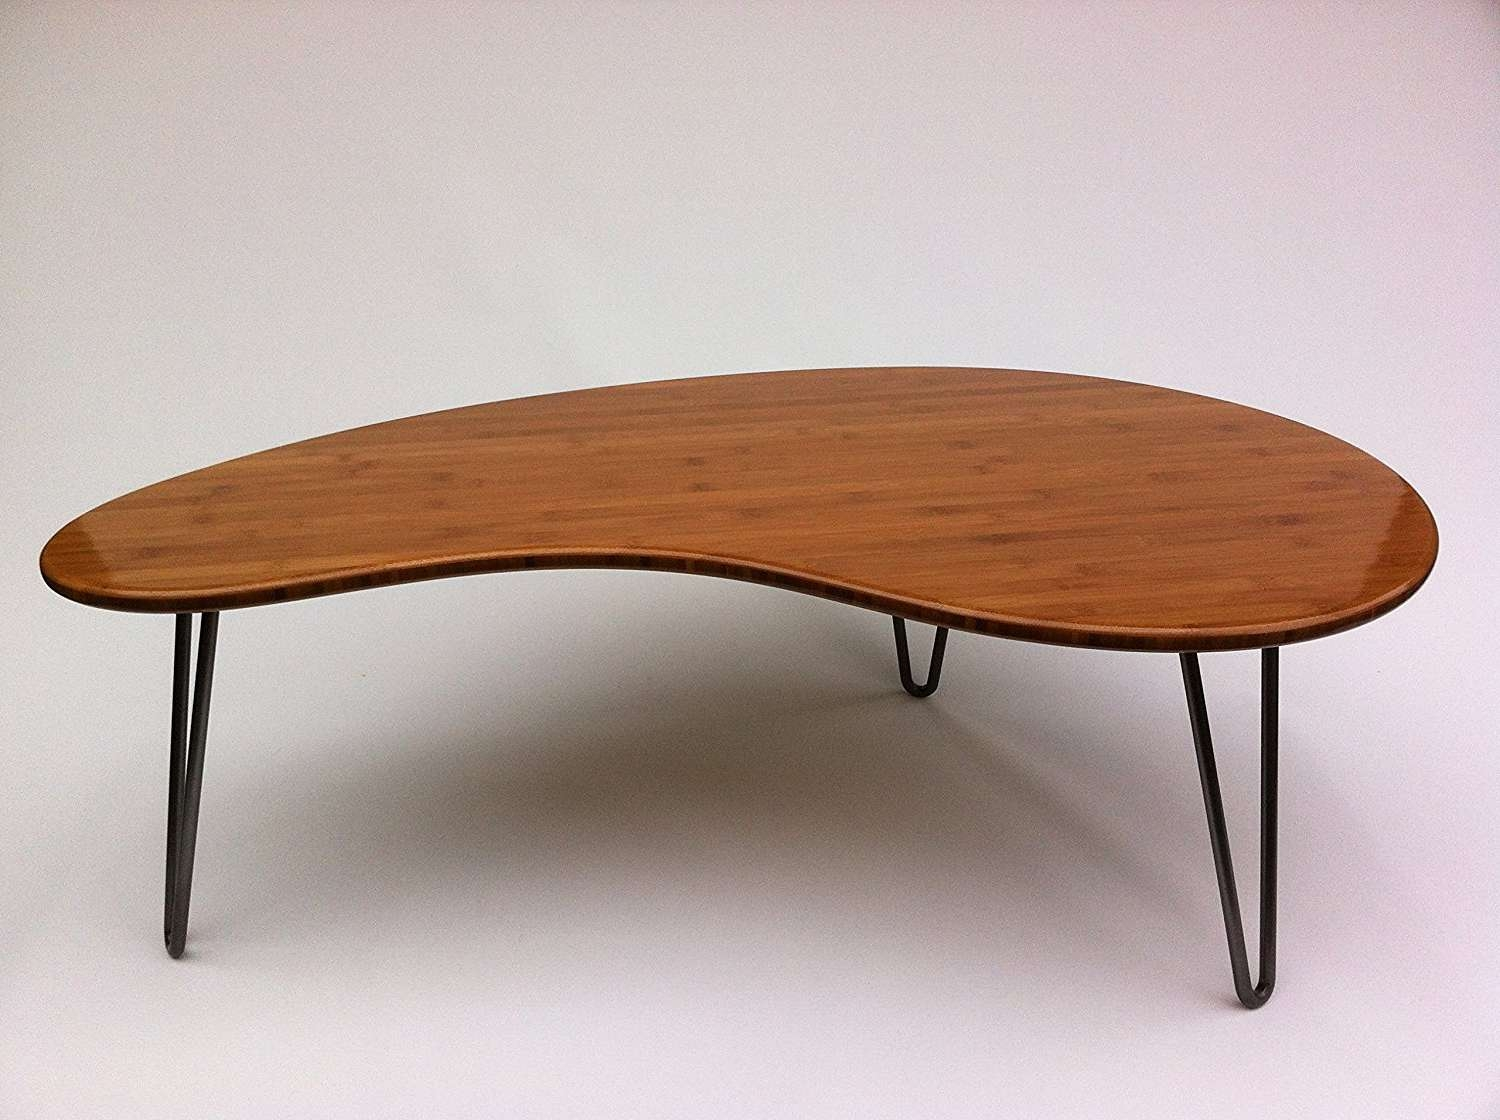 Coffee Tables : Small Oval Coffee Table Black Oval Coffee Table In Widely Used Coffee Tables With Oval Shape (View 5 of 20)